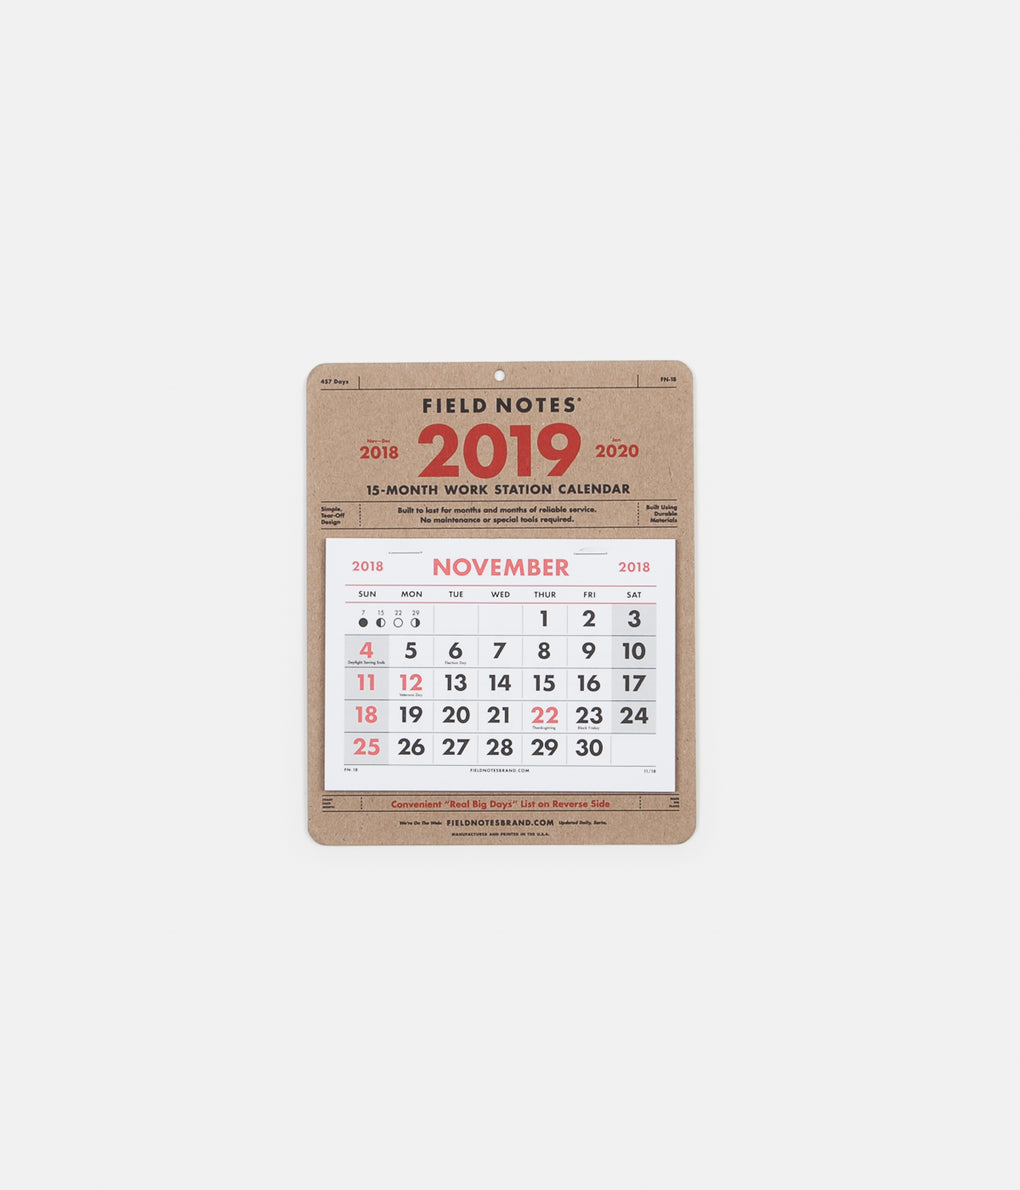 Field Notes Work Station Calendar - 15 Month